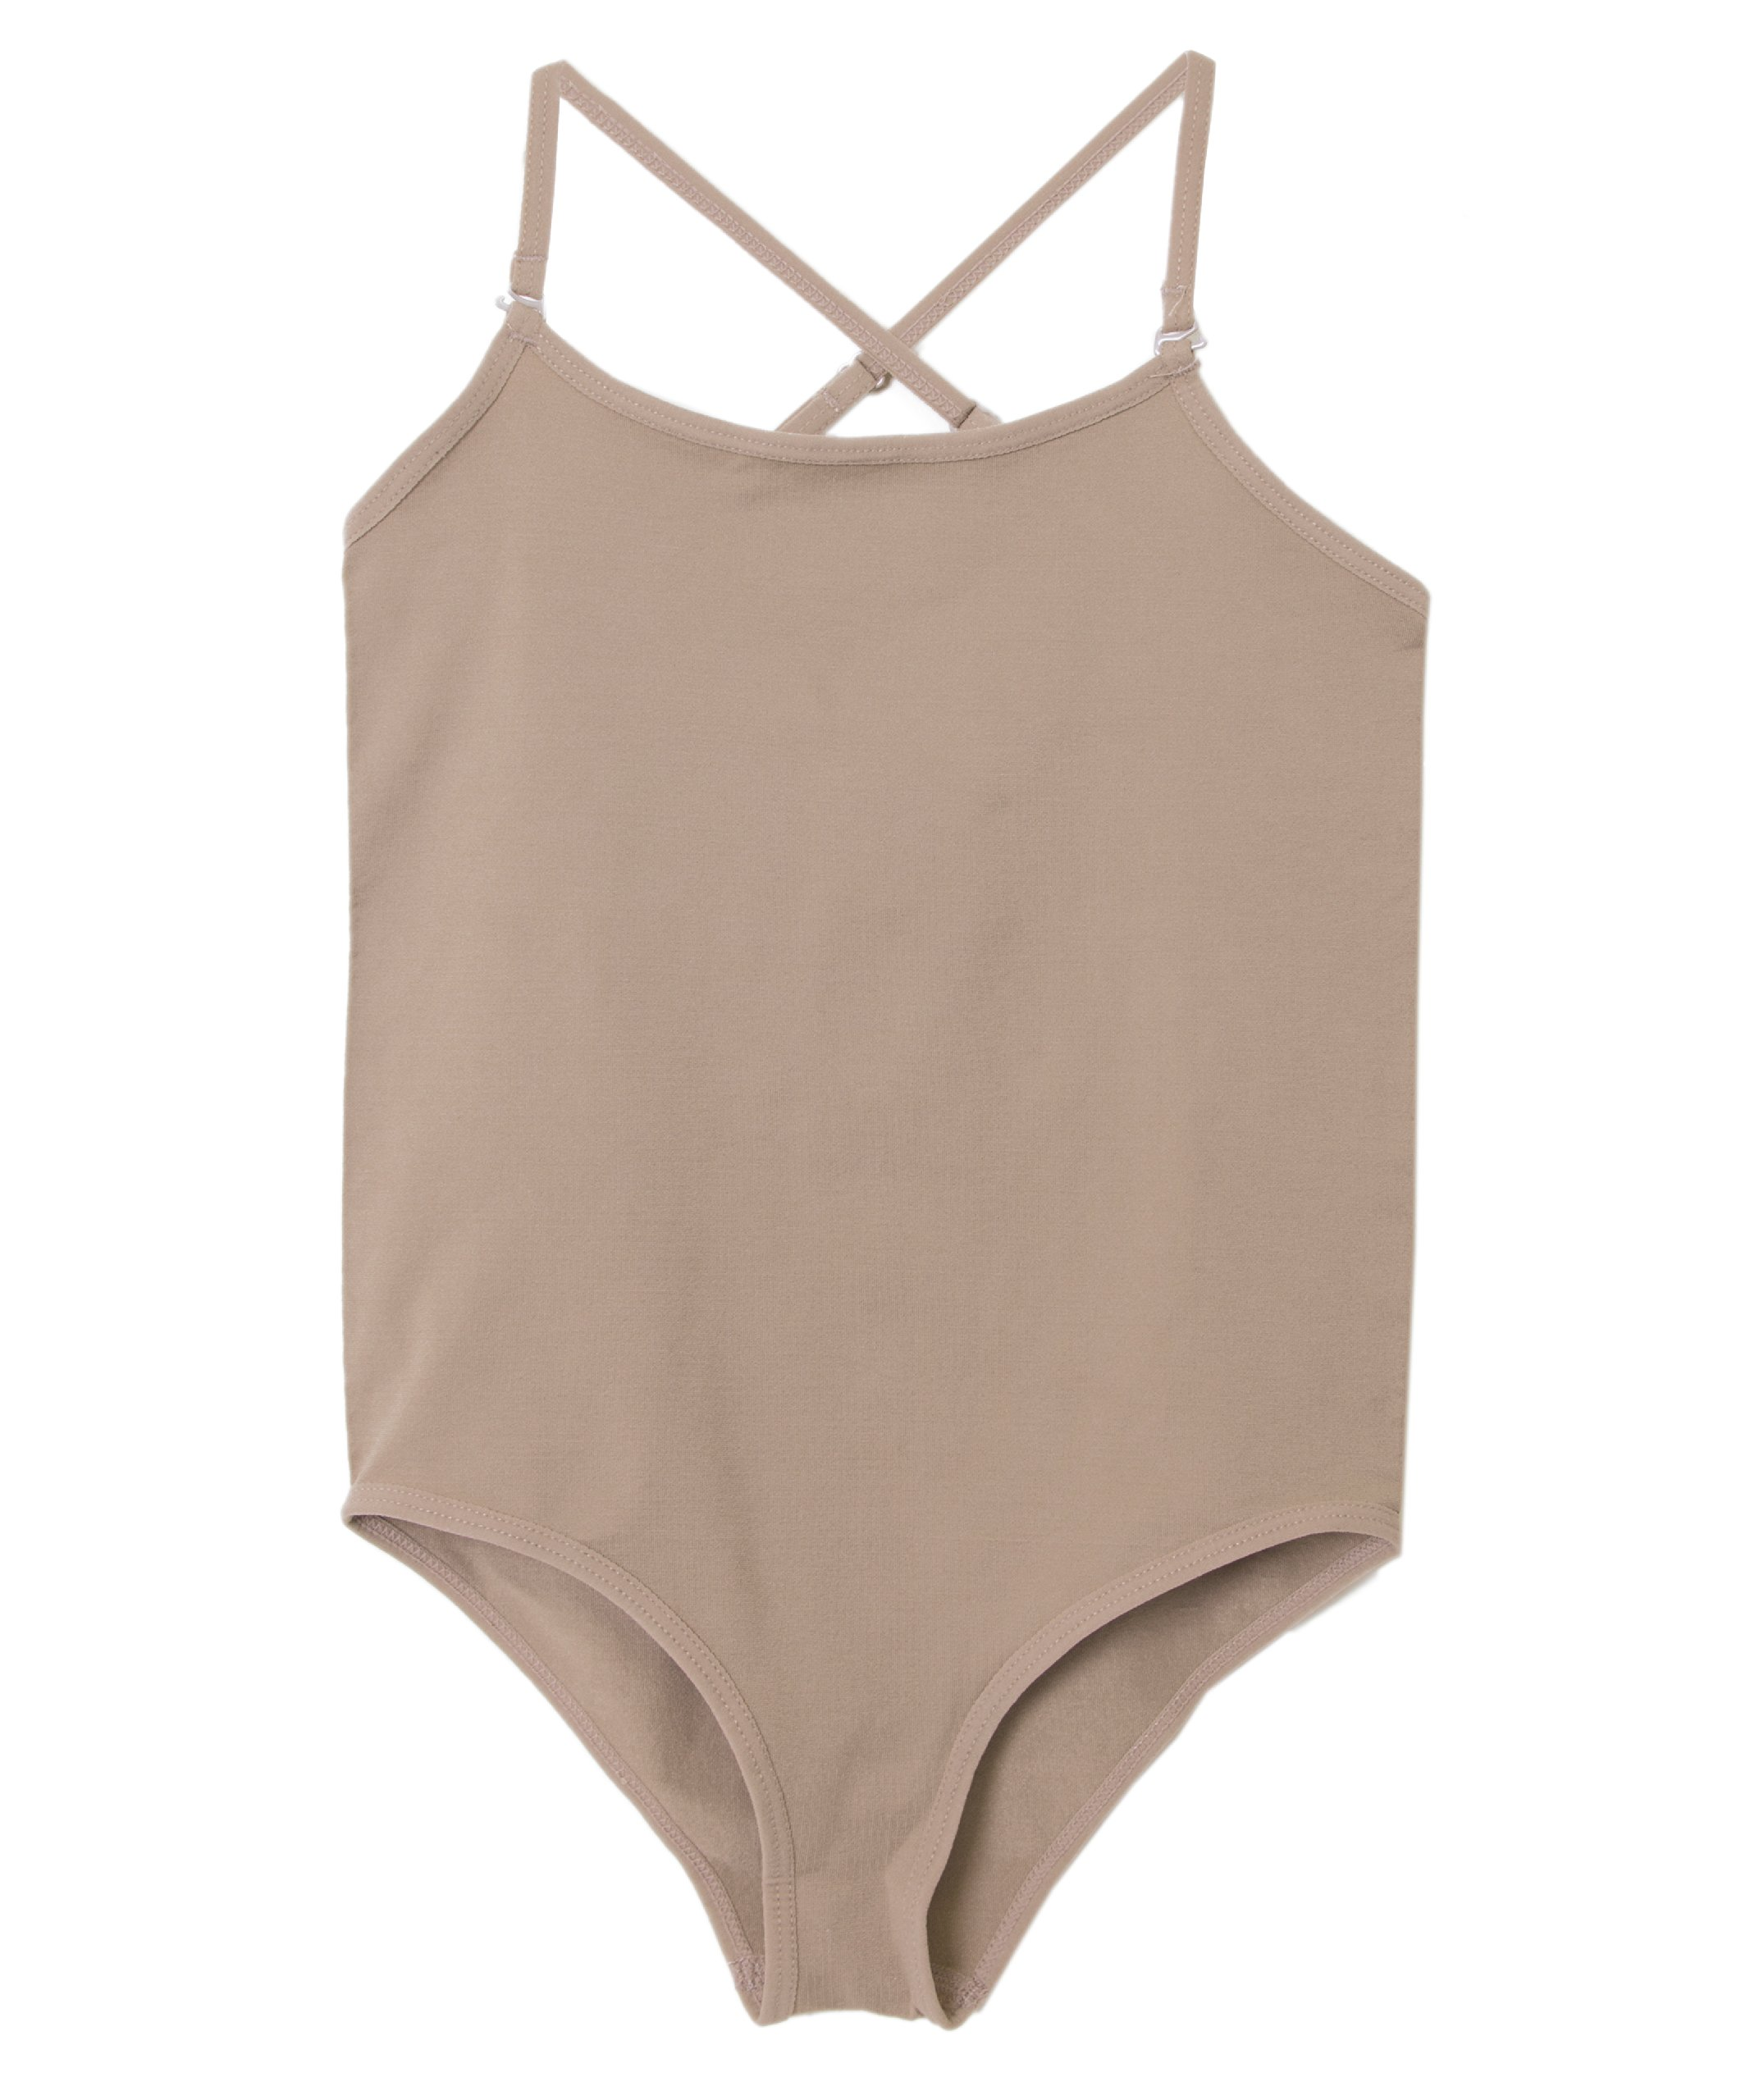 Basic Moves Seamless Camisole Adult --Nude Small by Basic Moves